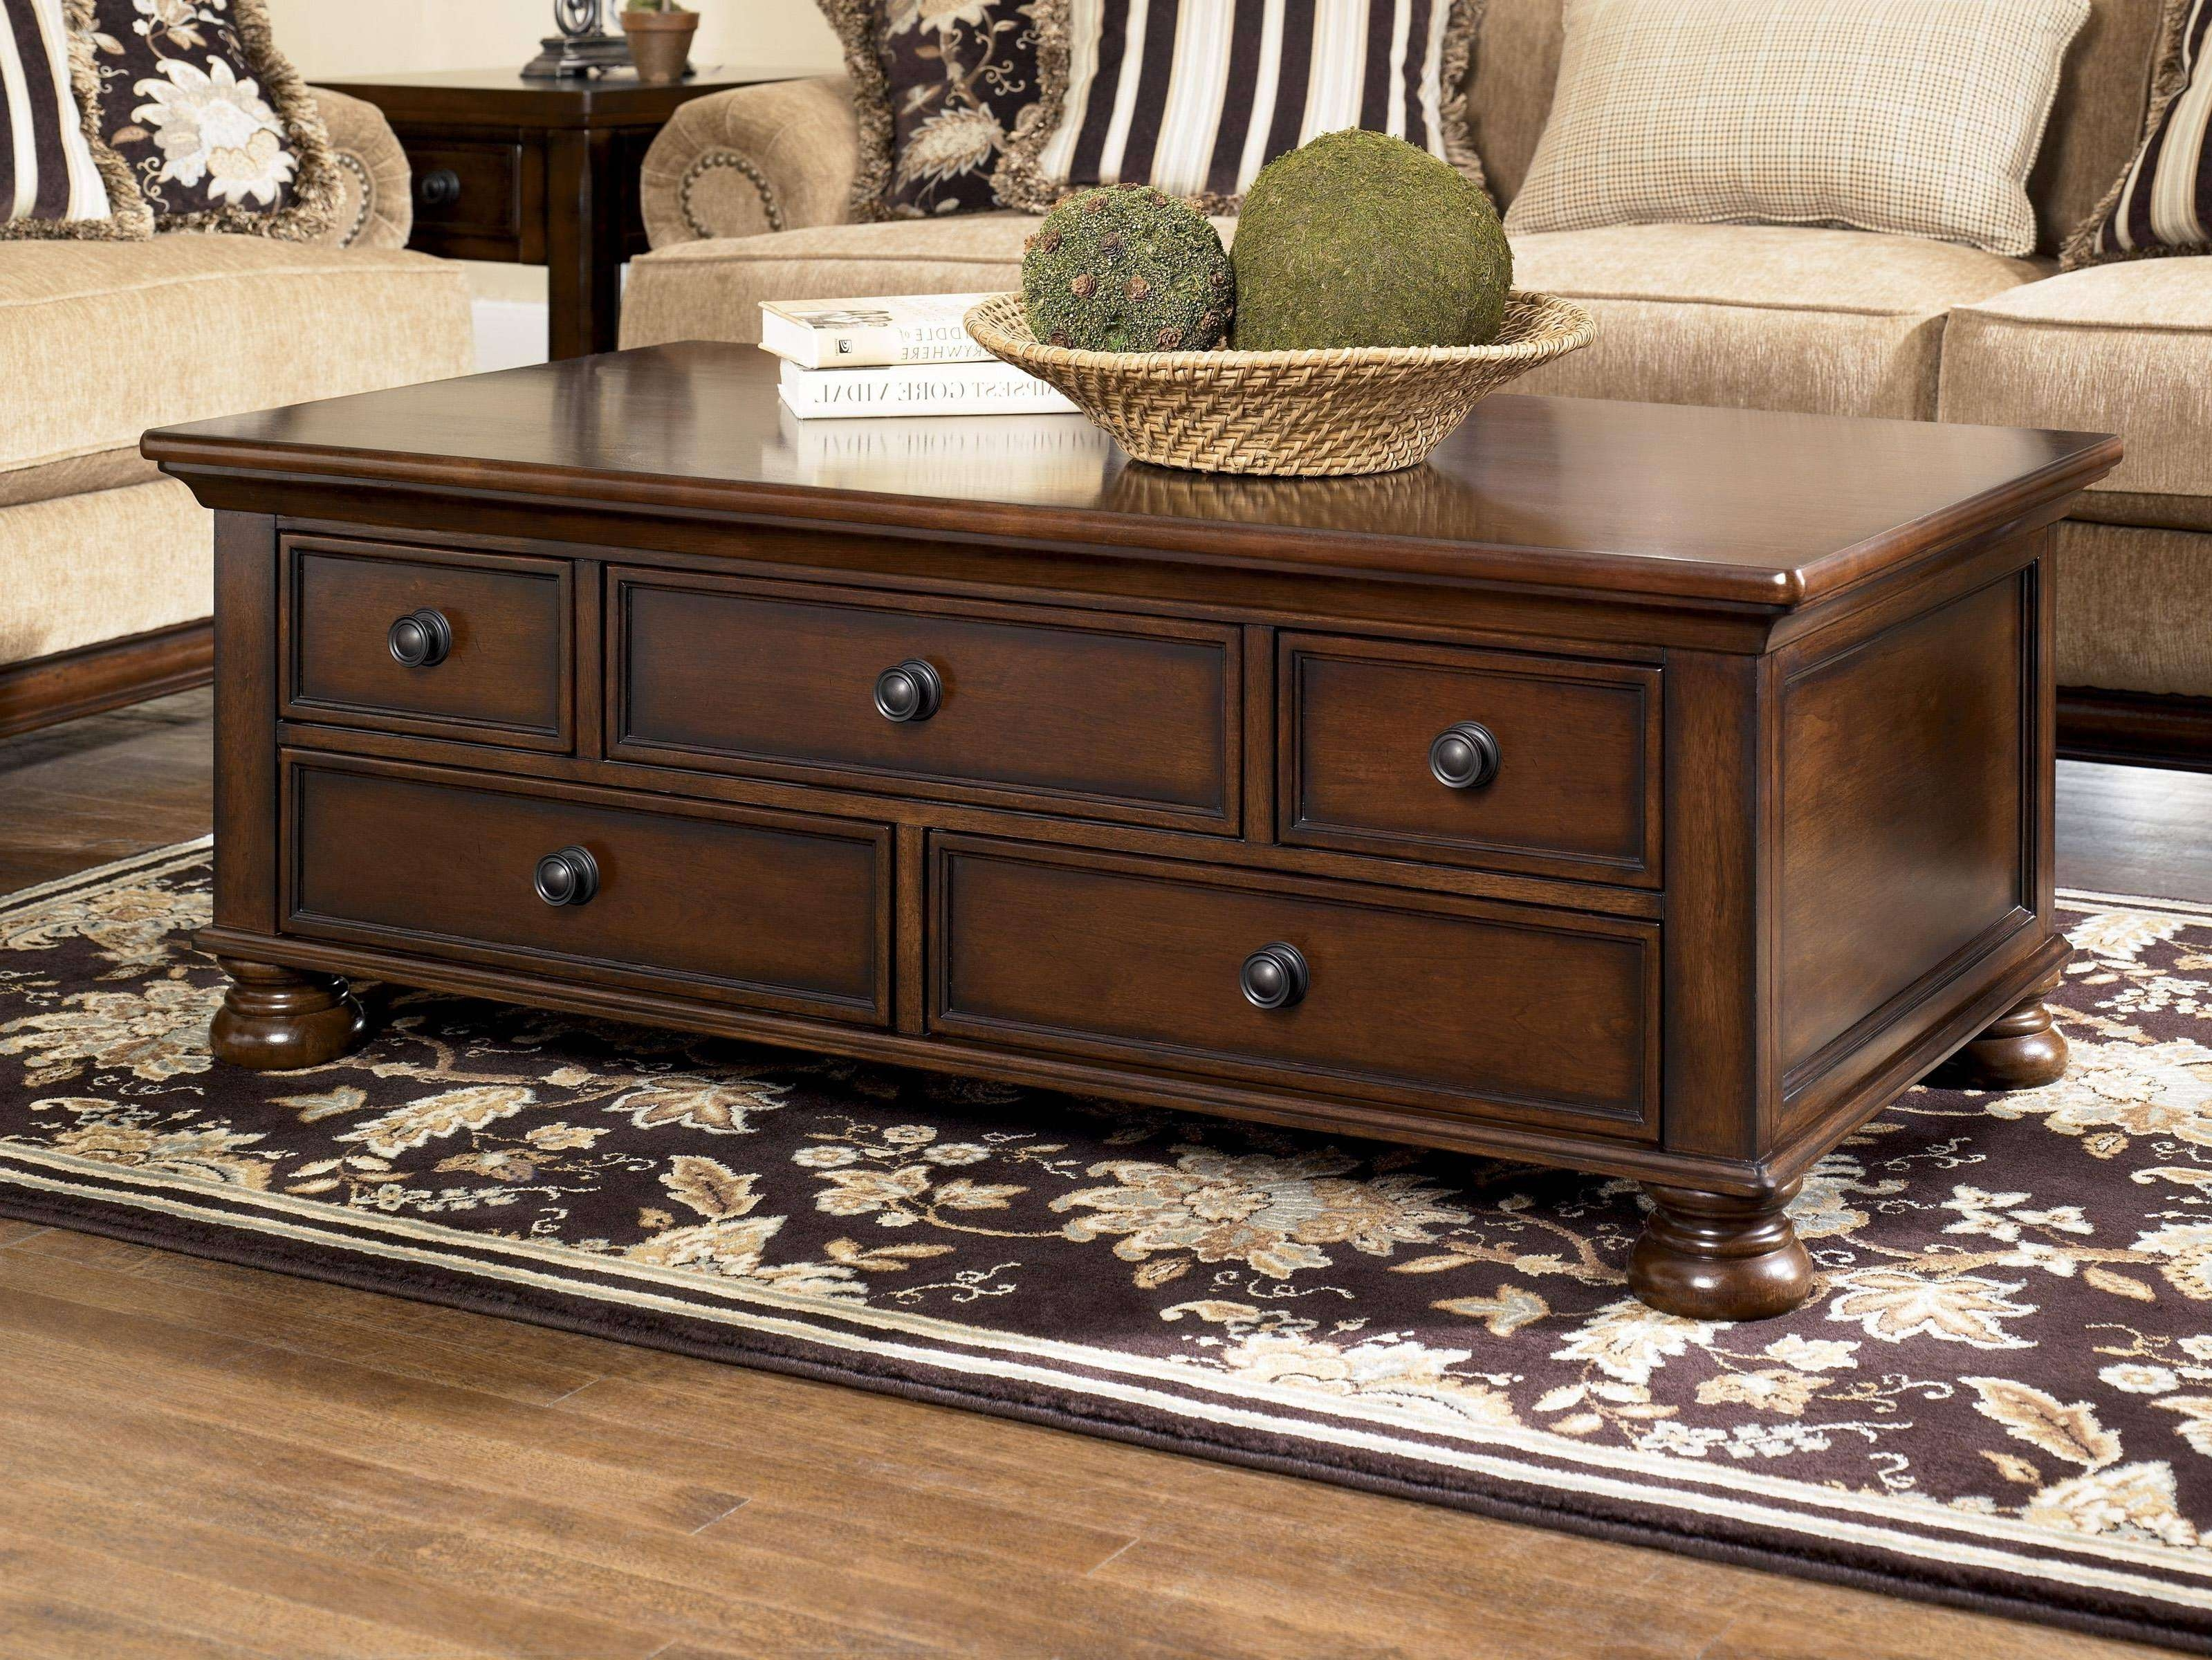 Widely Used Waverly Lift Top Coffee Tables With Regard To Coffee Table : Best Collection Of Waverly Lift Top Coffee Tables (View 5 of 20)